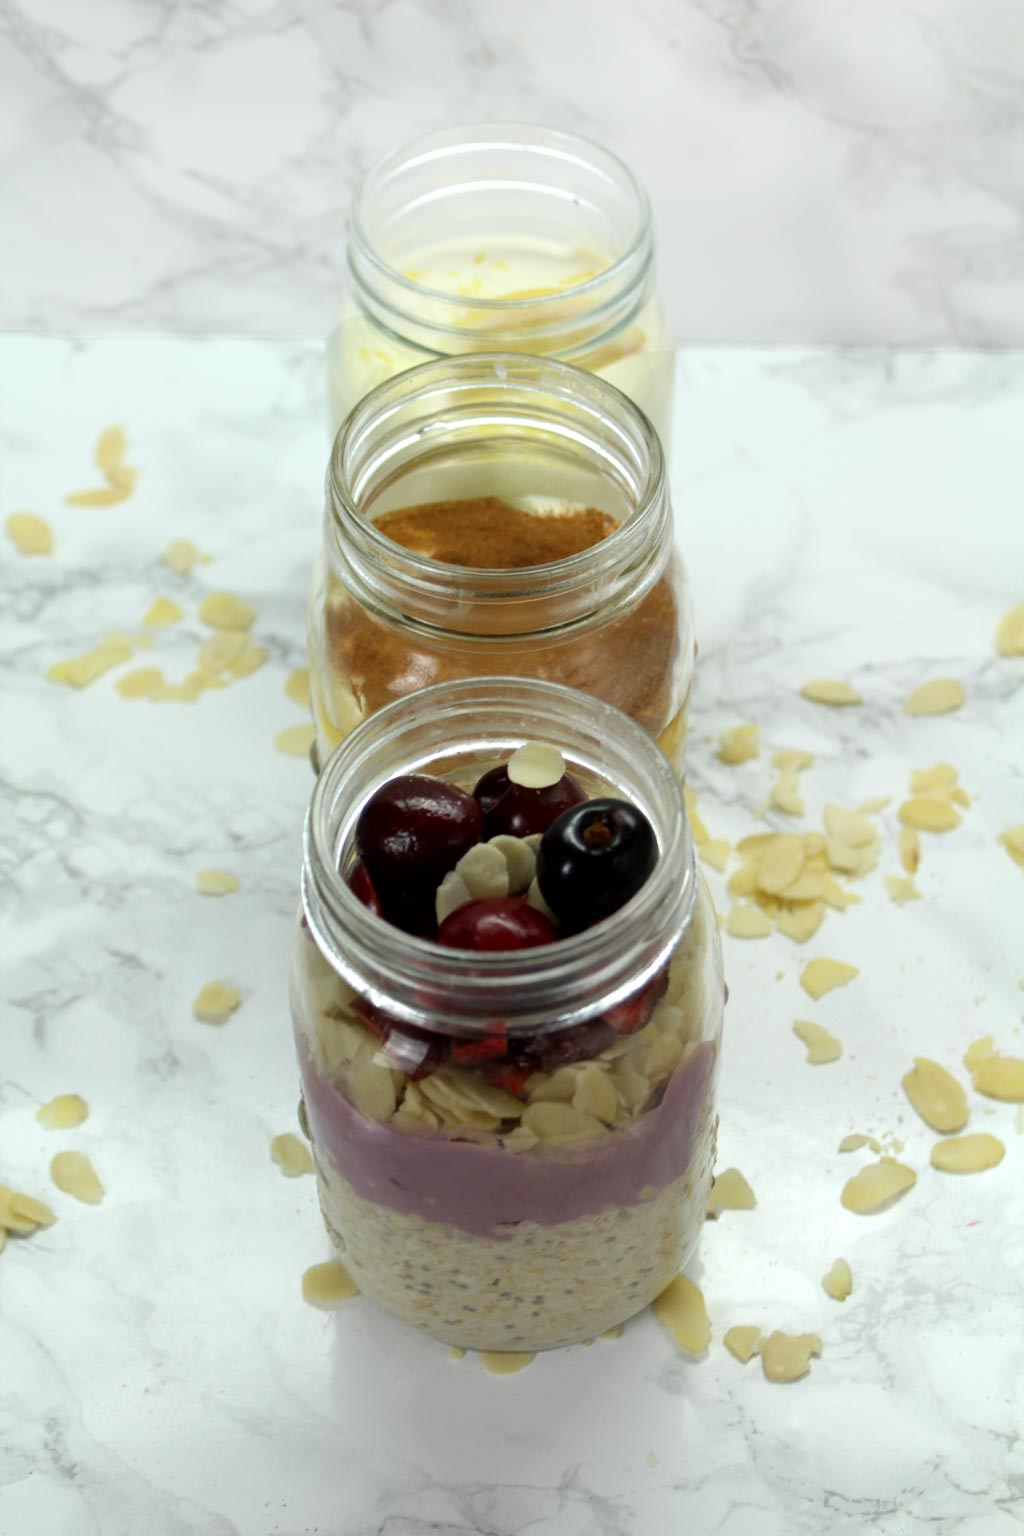 3 dessert inspired overnight oats with almond milk